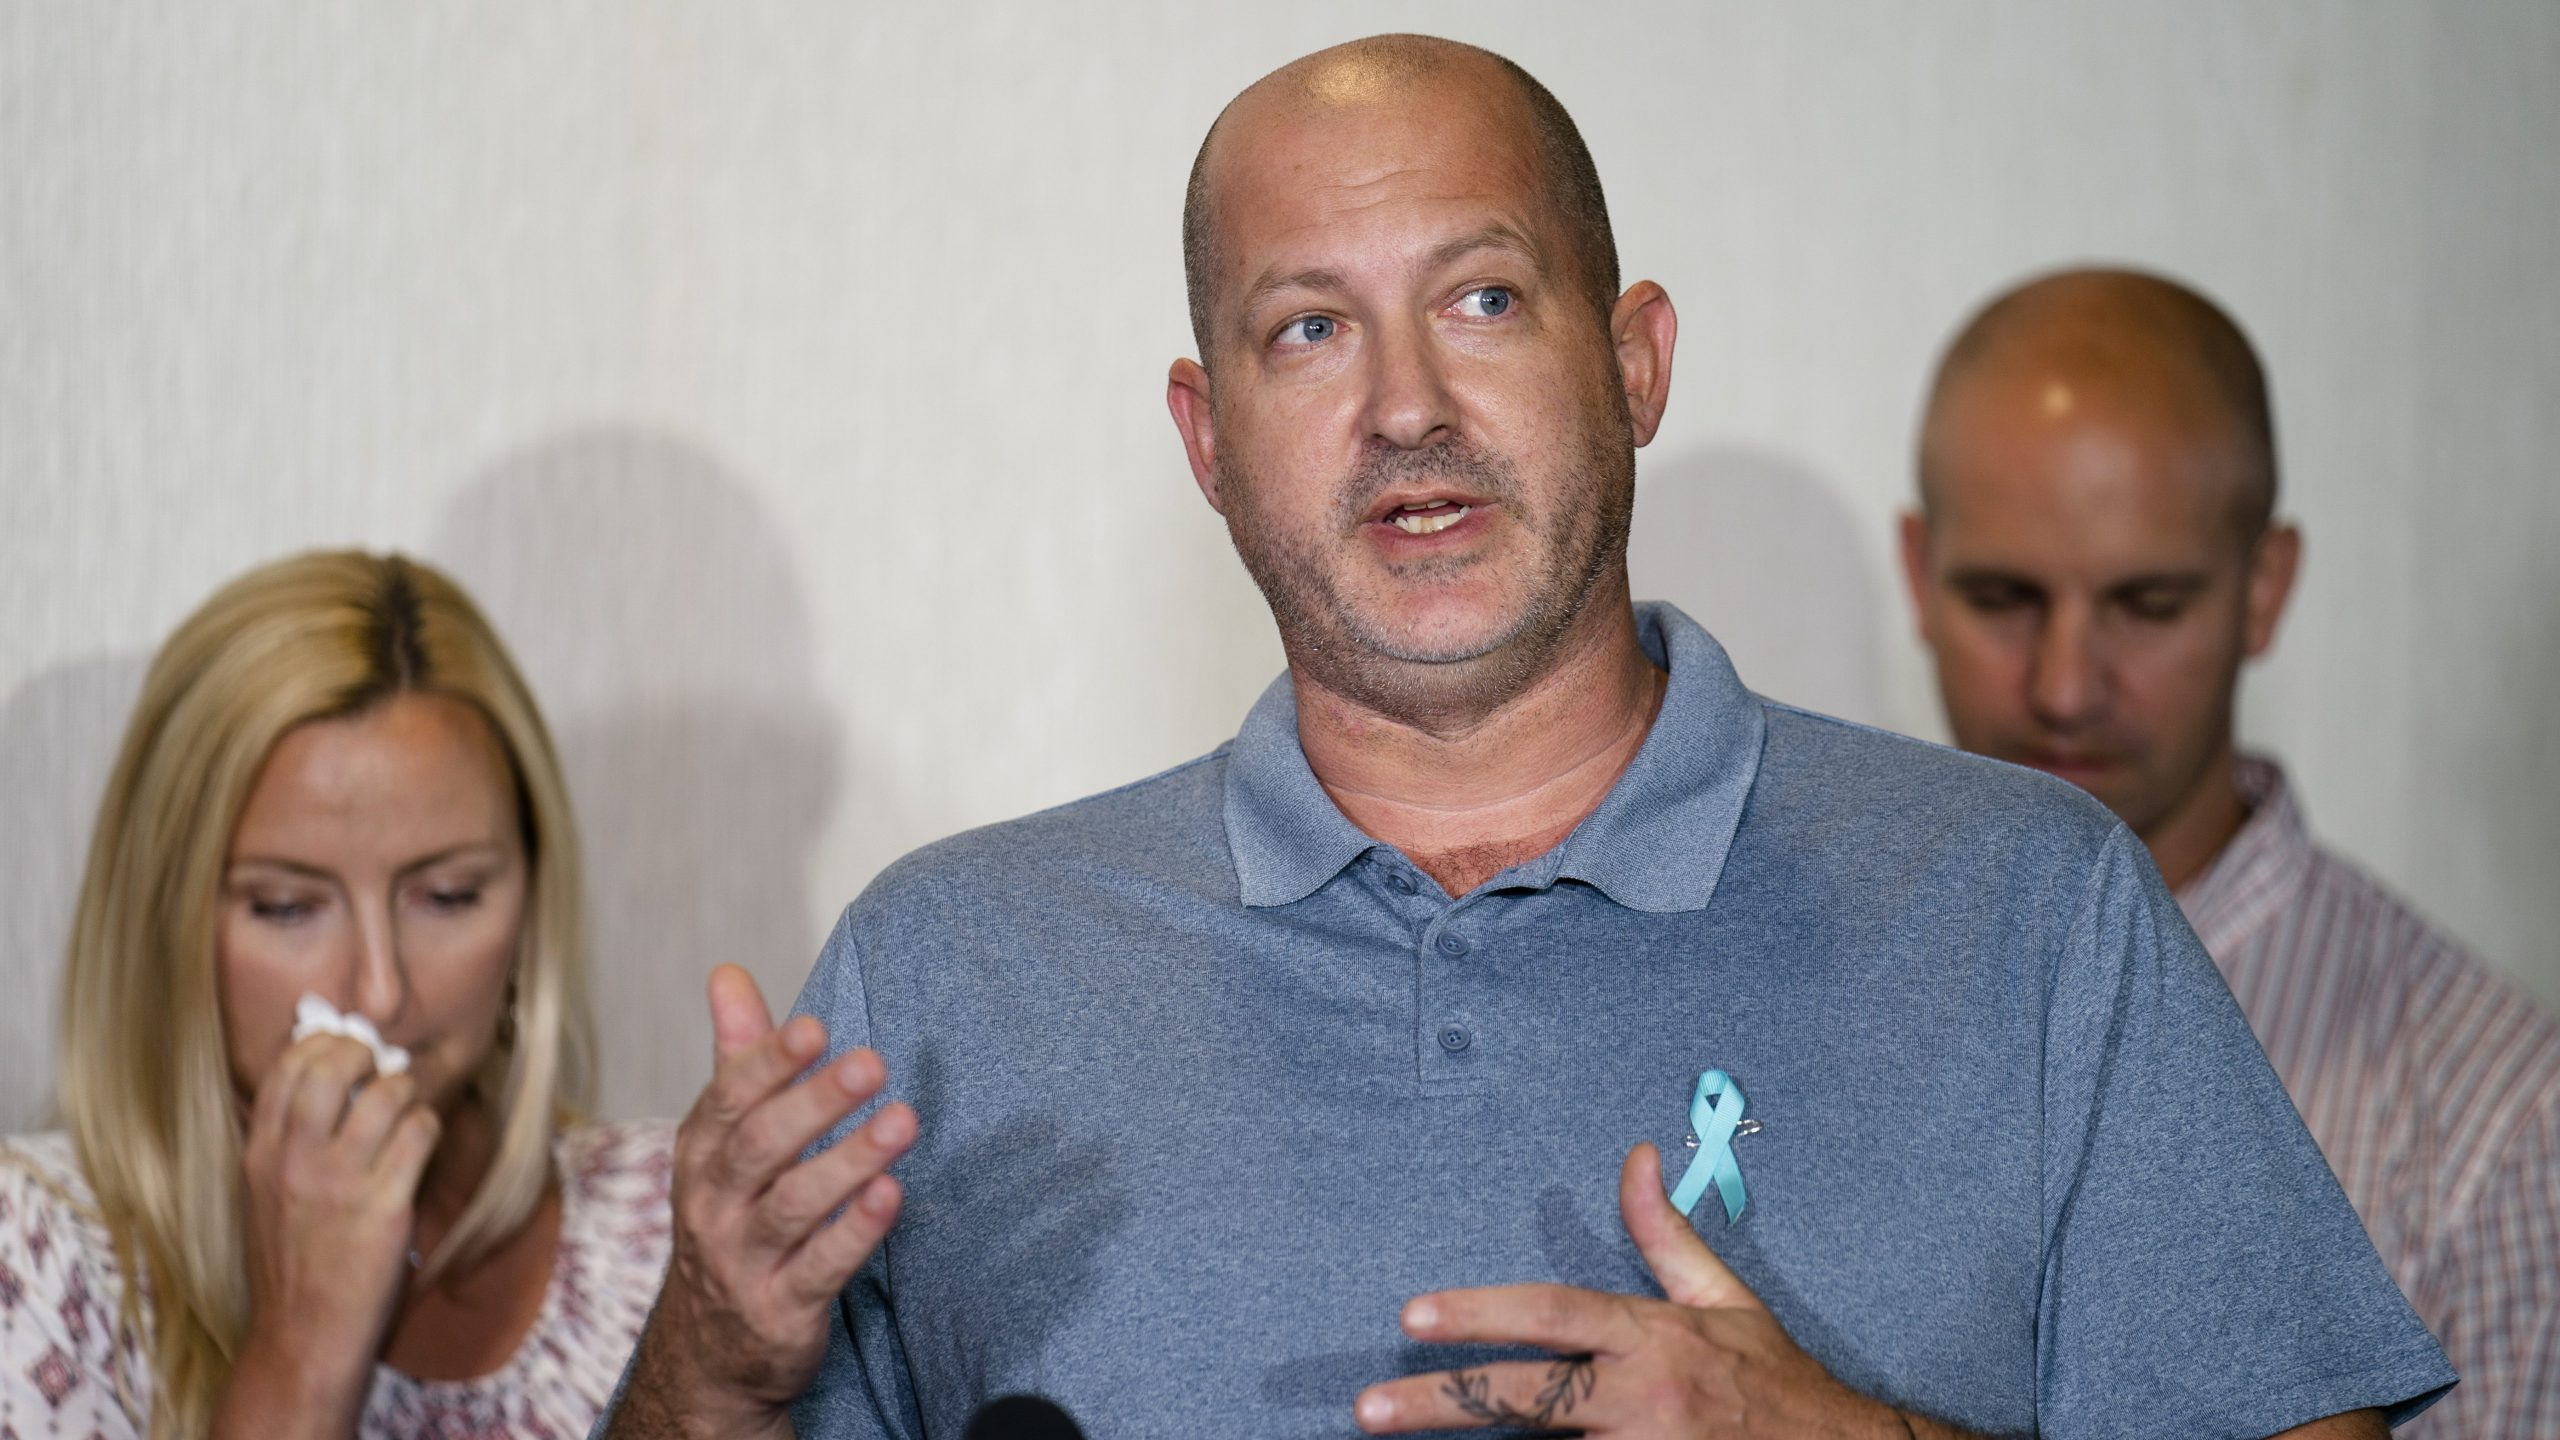 Joseph Petito, father of Gabby Petito, whose death on a cross-country trip has sparked a manhunt for her boyfriend Brian Laundrie, speaks during a news conference in Bohemia, N.Y., on Sept. 28, 2021. (John Minchillo / Associated Press)